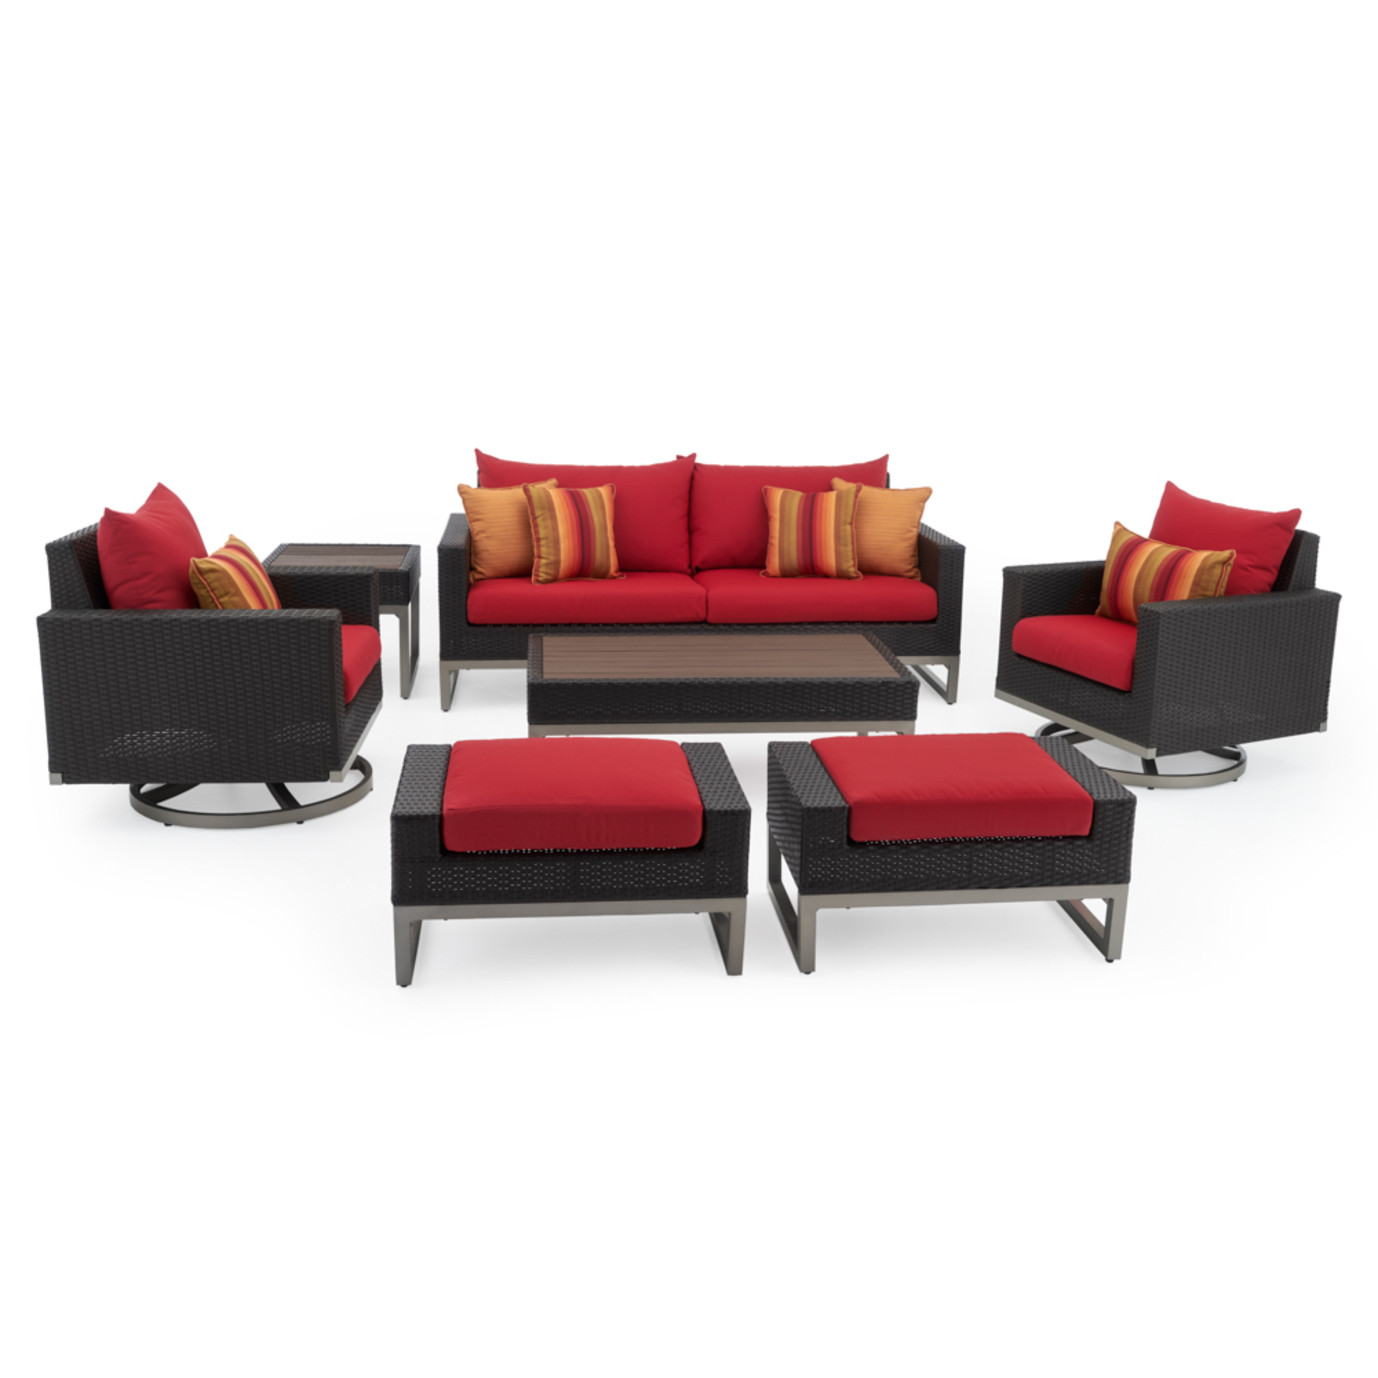 Milo™ Espresso 7 Piece Motion Deep Seating Set - Sunset Red